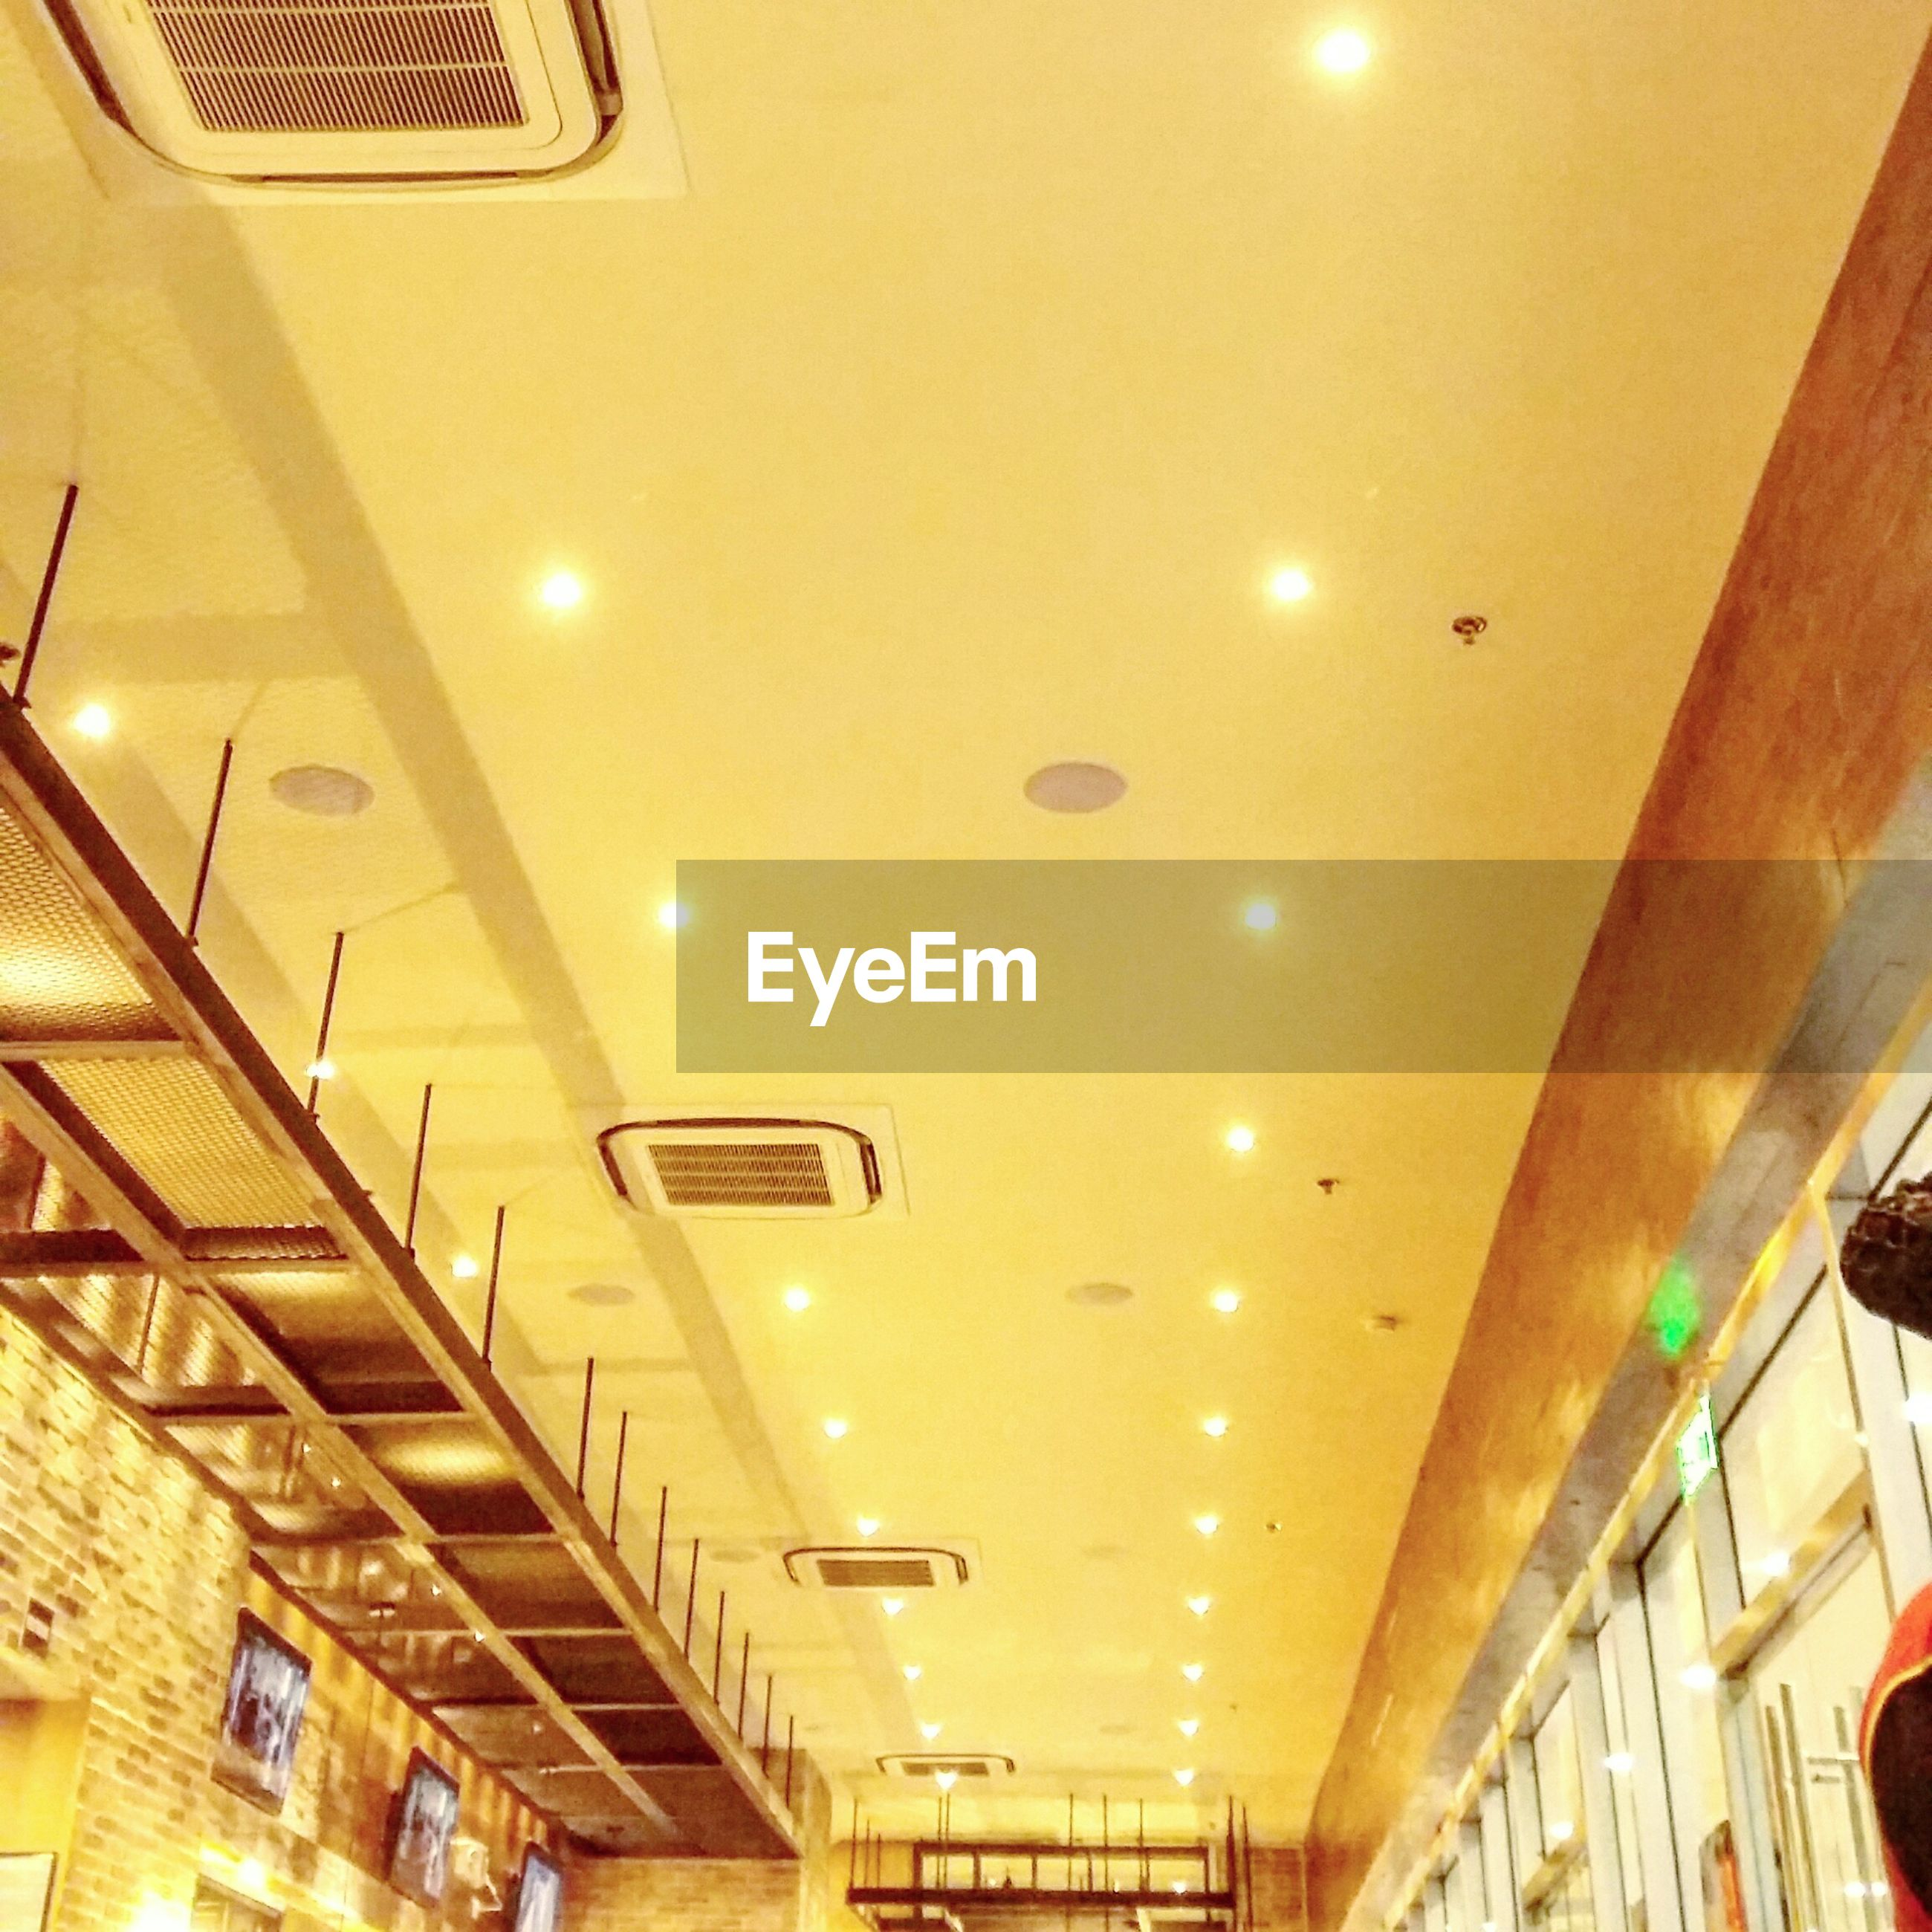 indoors, ceiling, illuminated, lighting equipment, low angle view, modern, hanging, diminishing perspective, architecture, architectural feature, convenience, corridor, lobby, airport, theater, light fixture, hanging light, museum, electric light, fairy lights, famous place, recessed light